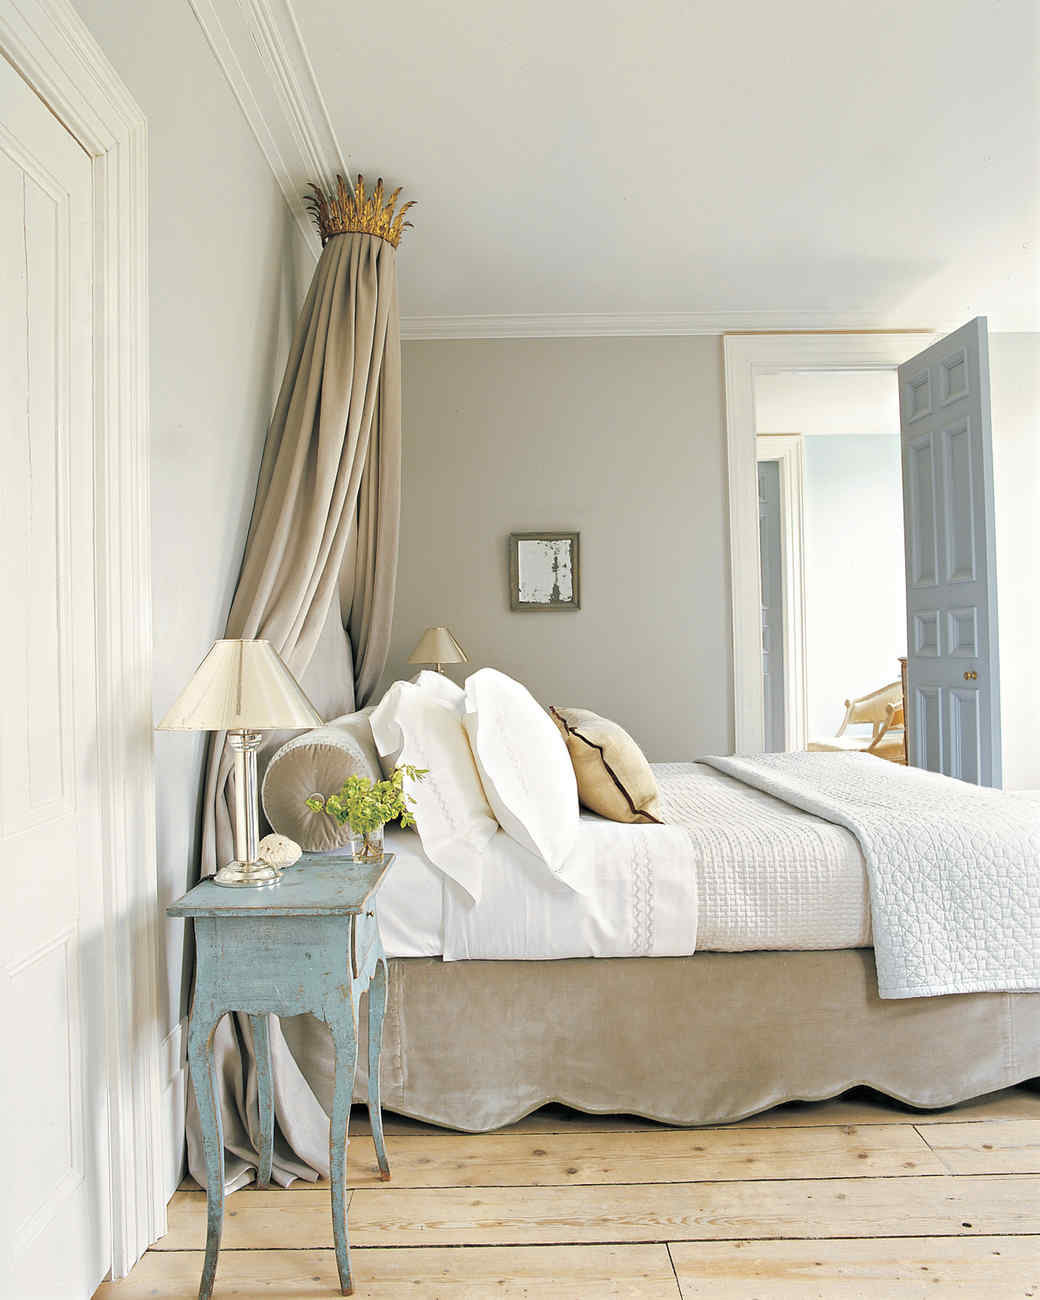 Bedroom Colors To Make It Look Bigger Grey Yellow Blue Bedroom Bedroom Bench Design Ideas Blue And White Bedroom Decor: Martha Stewart